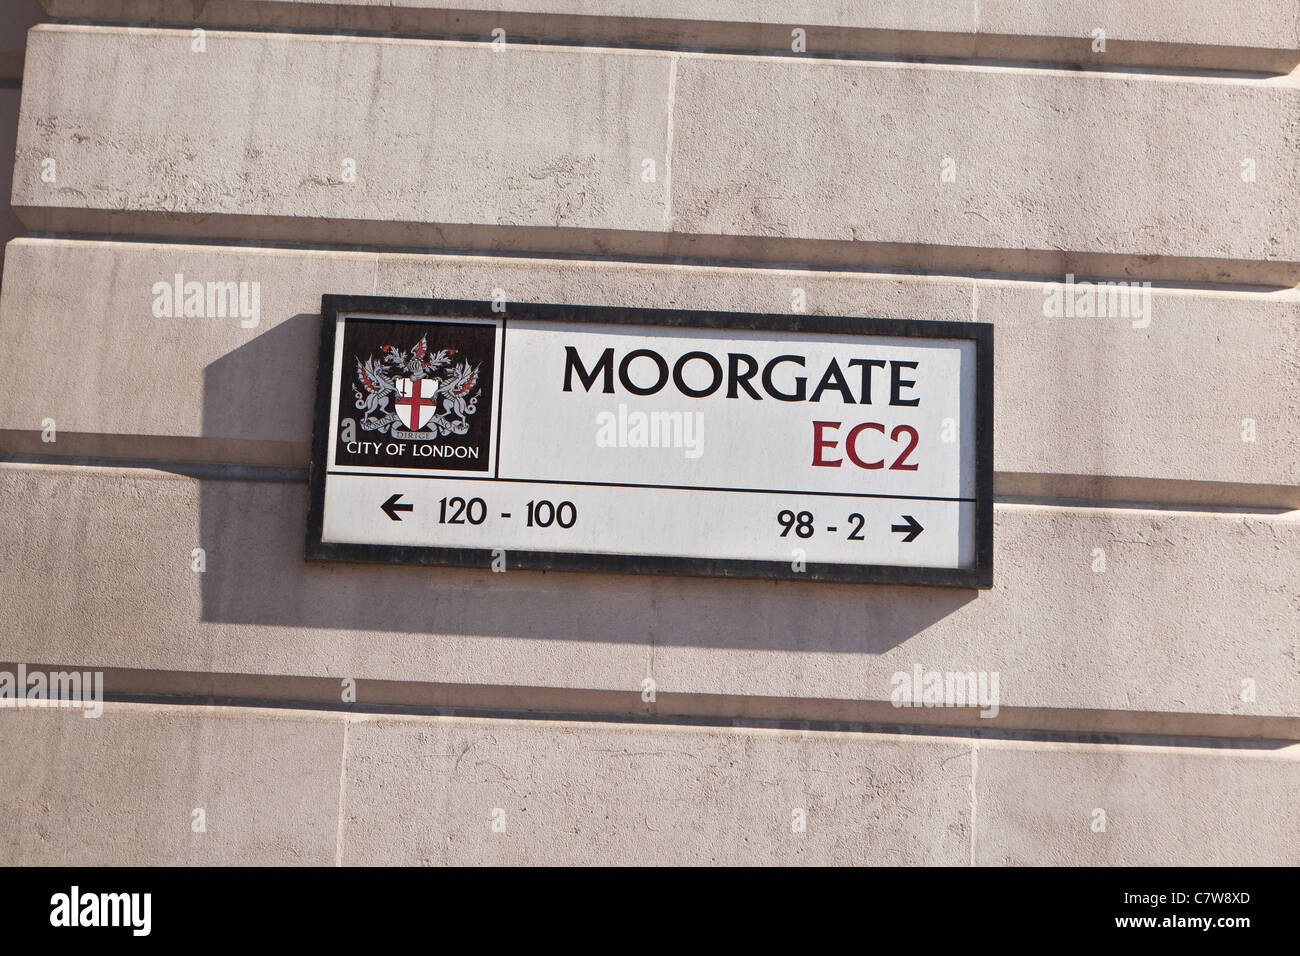 Moorgate Street sign, London, England - Stock Image